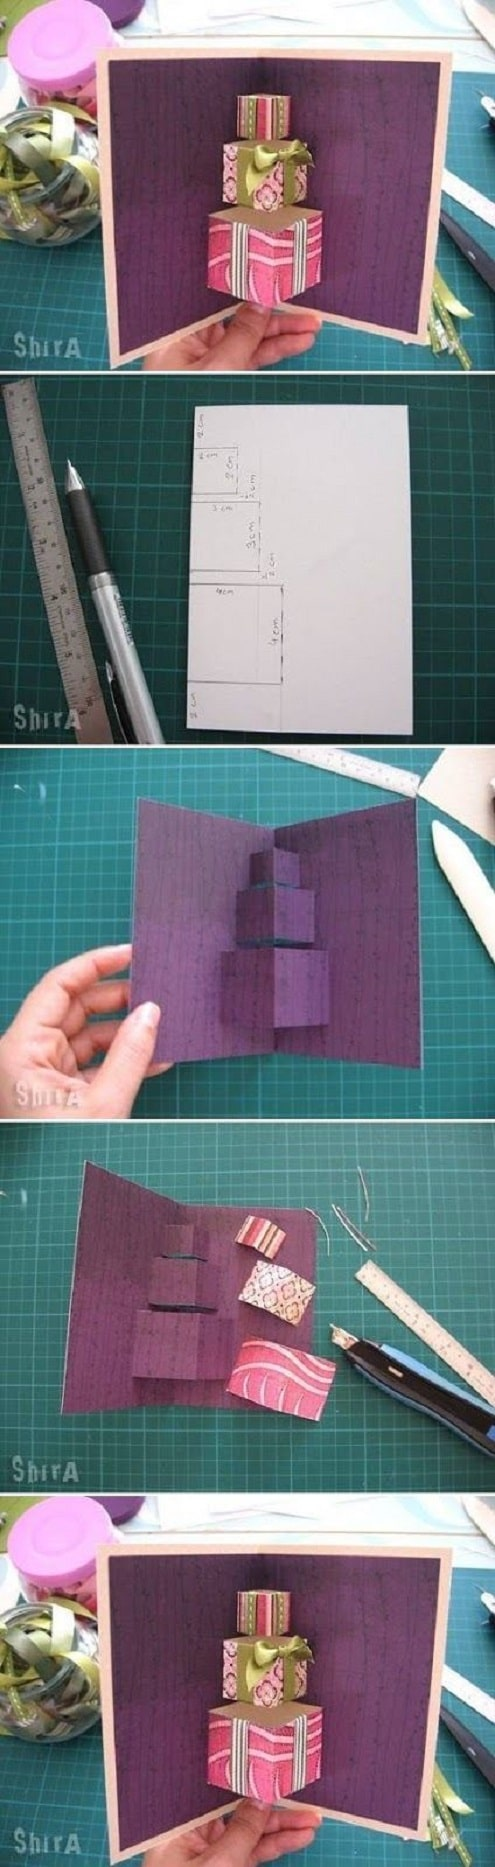 3D birthday card ideas easy to make